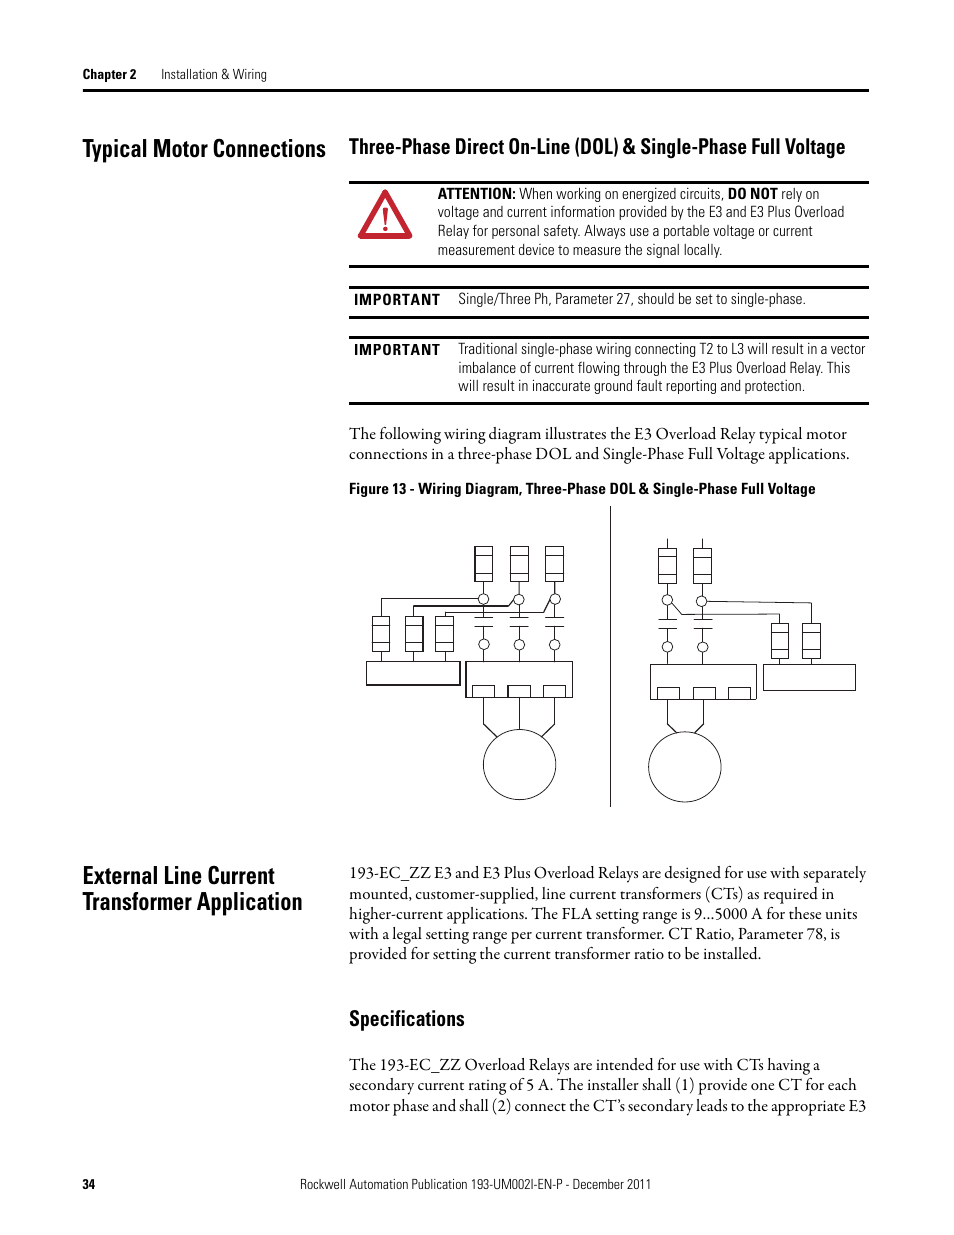 medium resolution of  specifications rockwell automation 193 ec1 2 3 5 193 ecpm 592 ec1 2 3 5 e3 and e3 plus solid state overload relay user manual user manual page 34